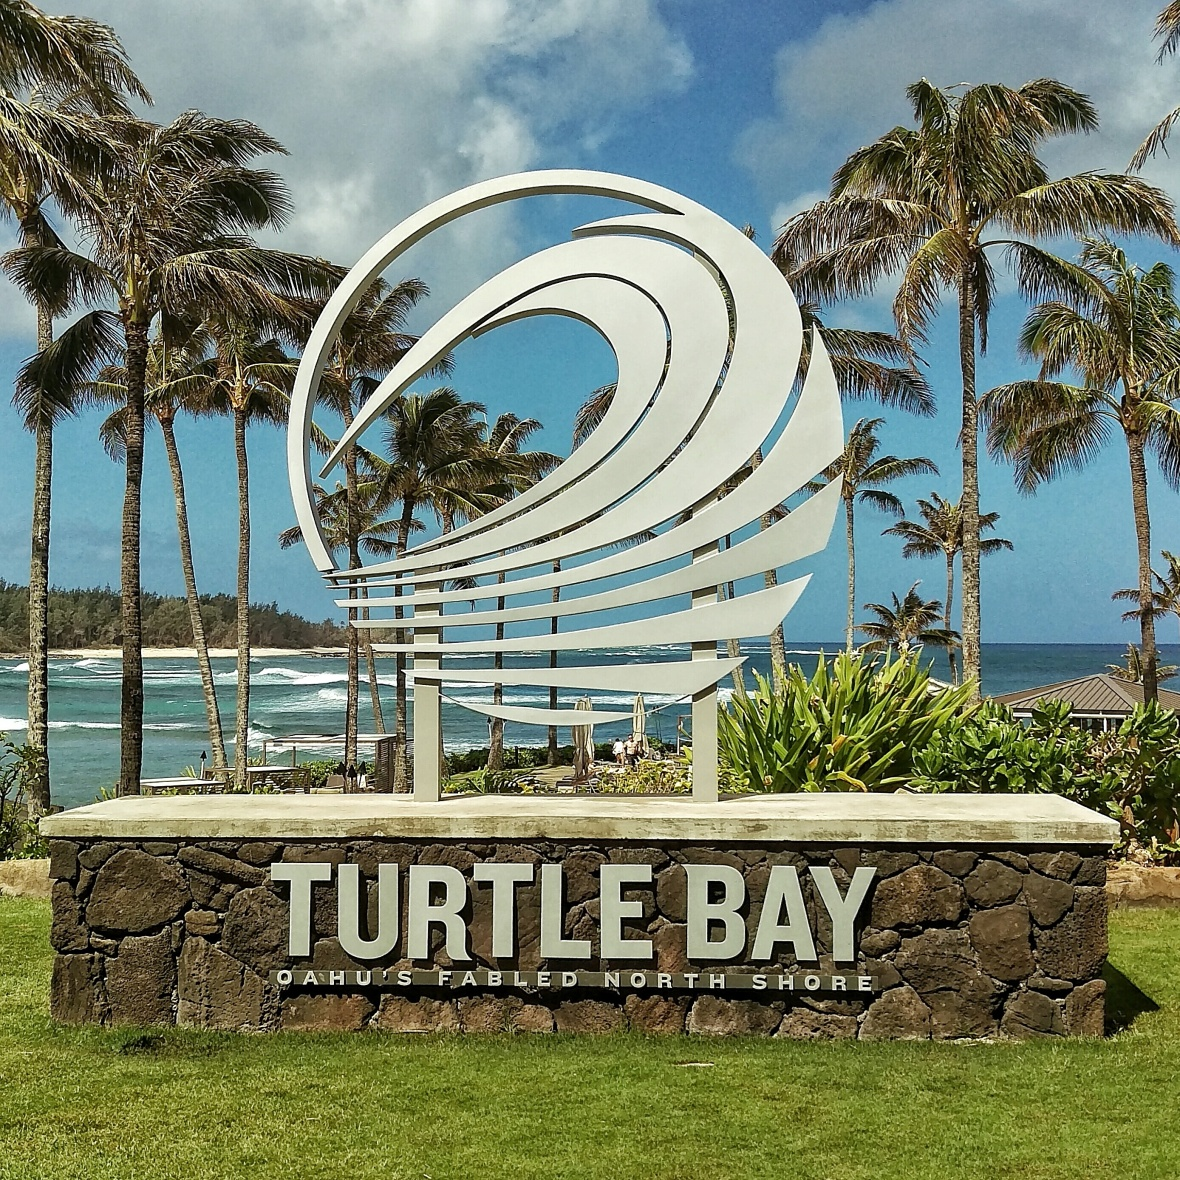 Turtle Bay Resort Signage